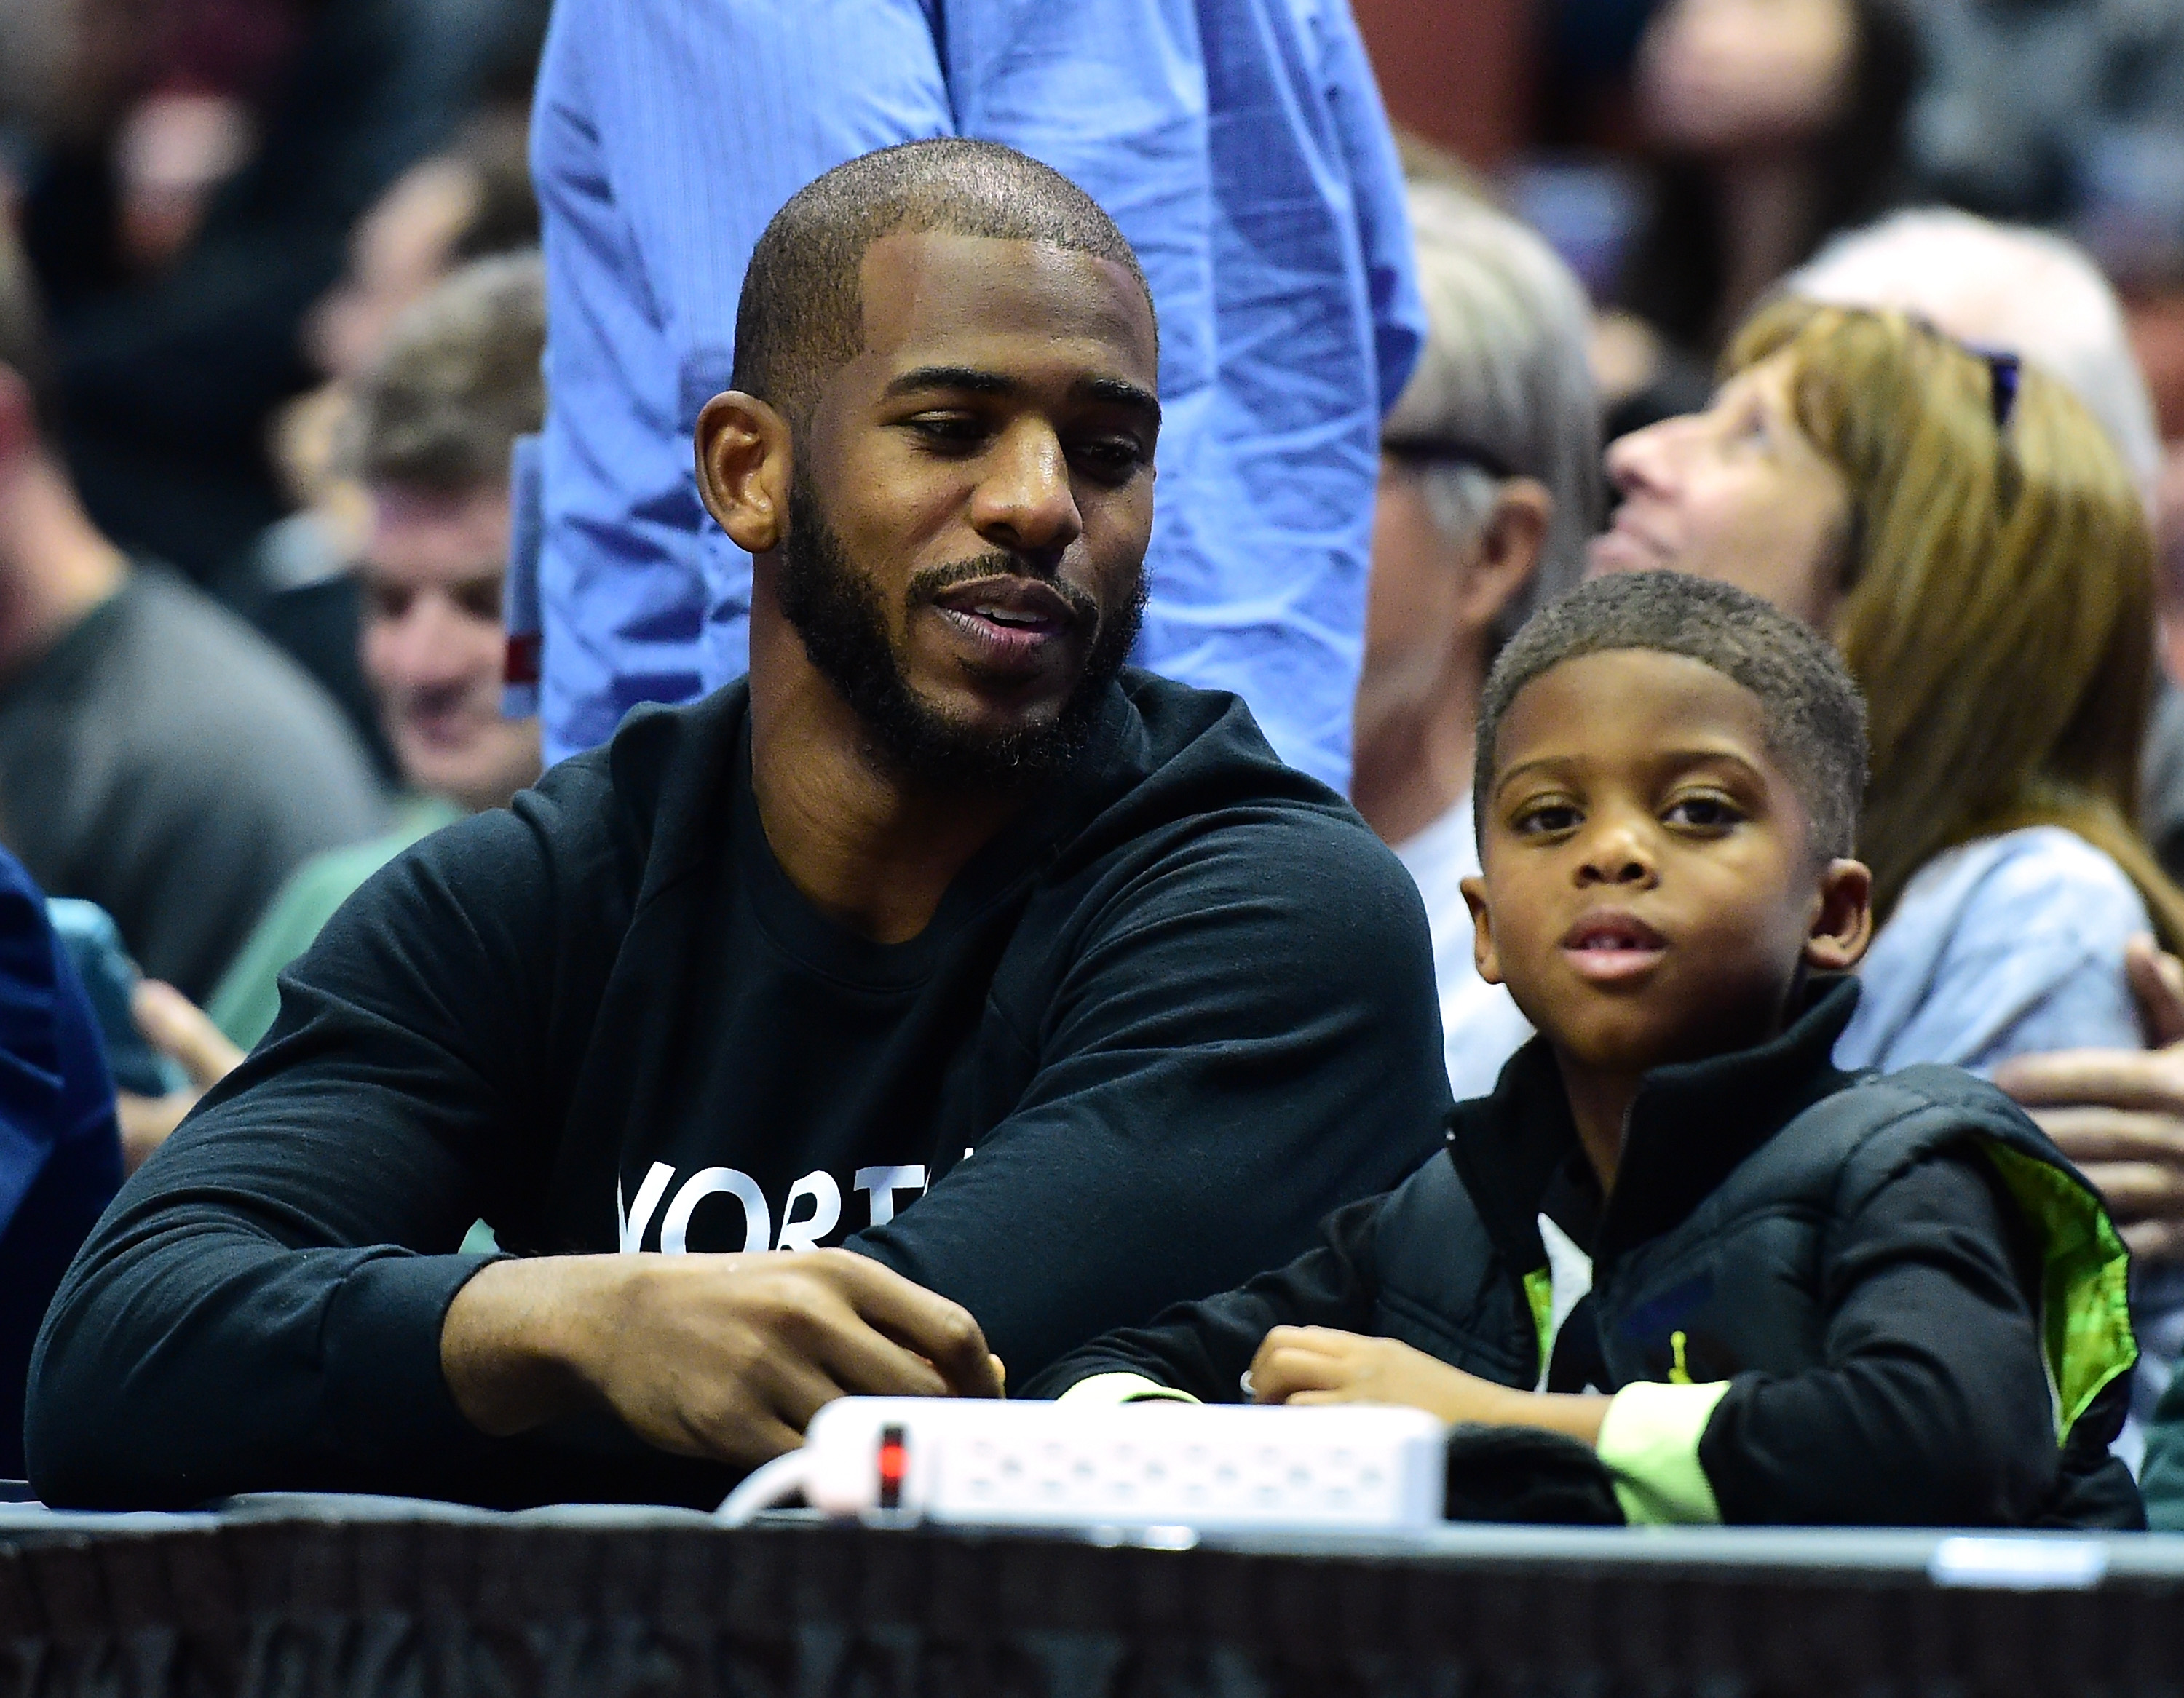 dd466f48f161cf Chris Paul of the Los Angeles Clippers and his son Chris watch the game  between the Michigan State Spartans and the Providence Friars during the ...